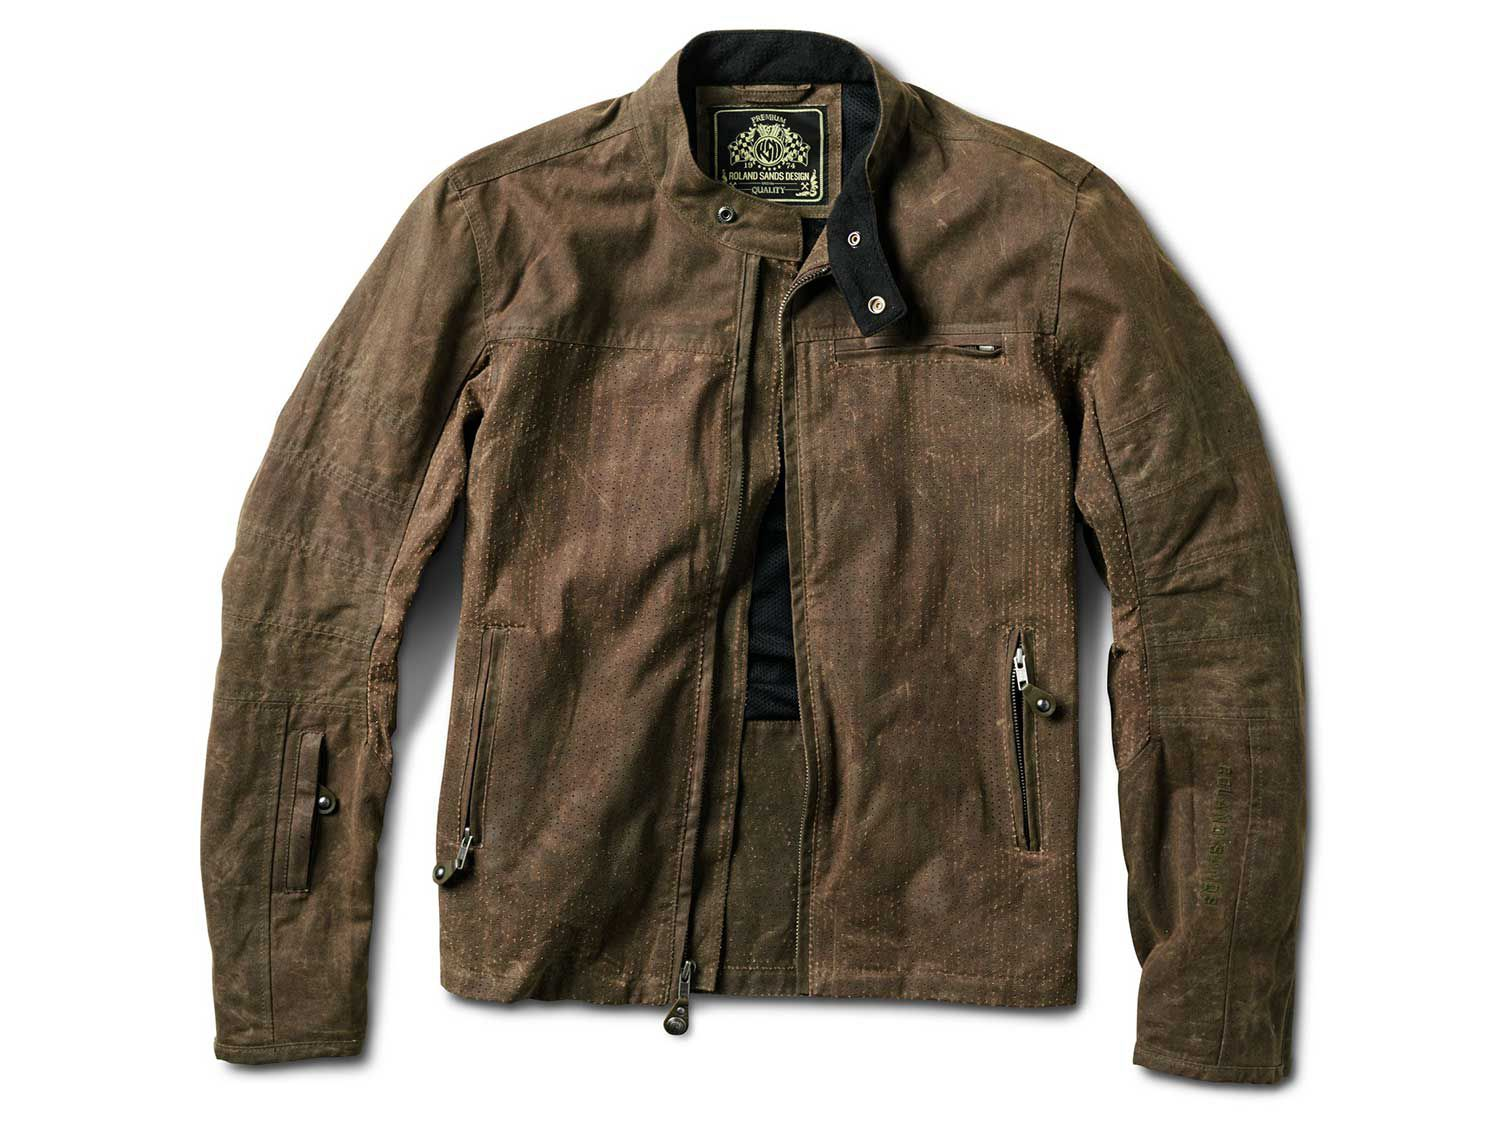 7 Of Our Favorite Summer Riding Jackets Motorcycle Cruiser